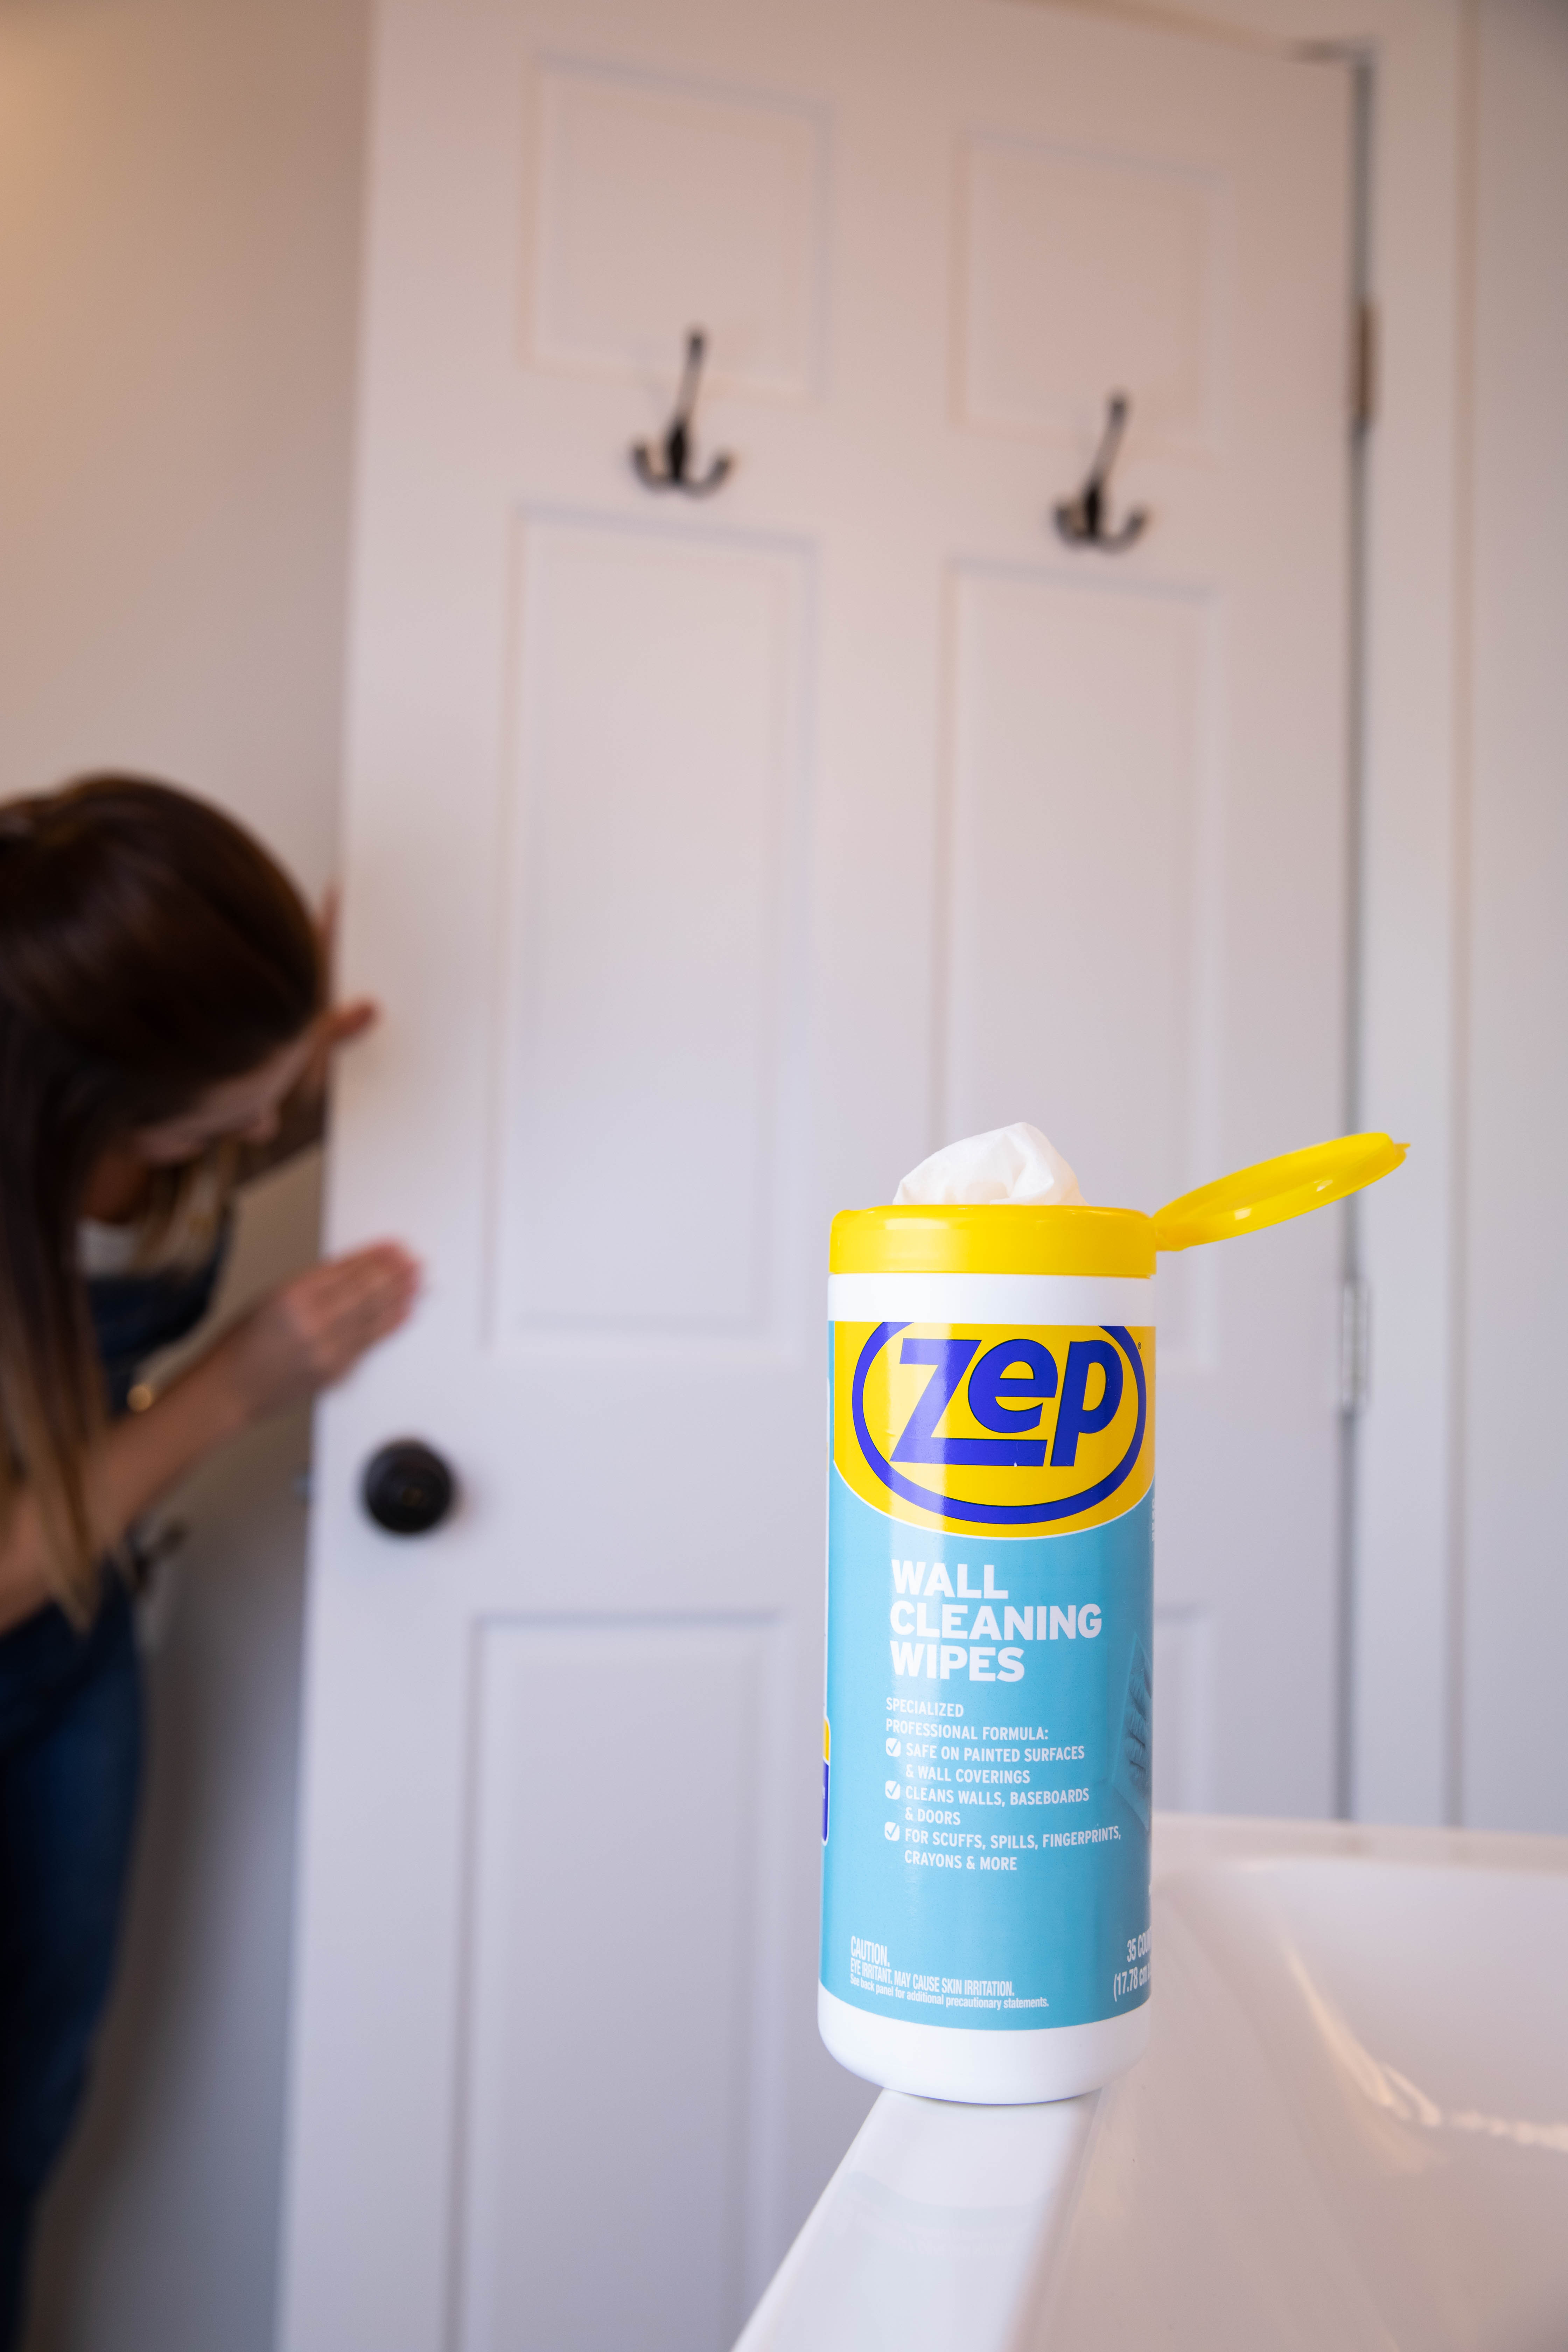 Zep_Wall_Cleaning_Wipes